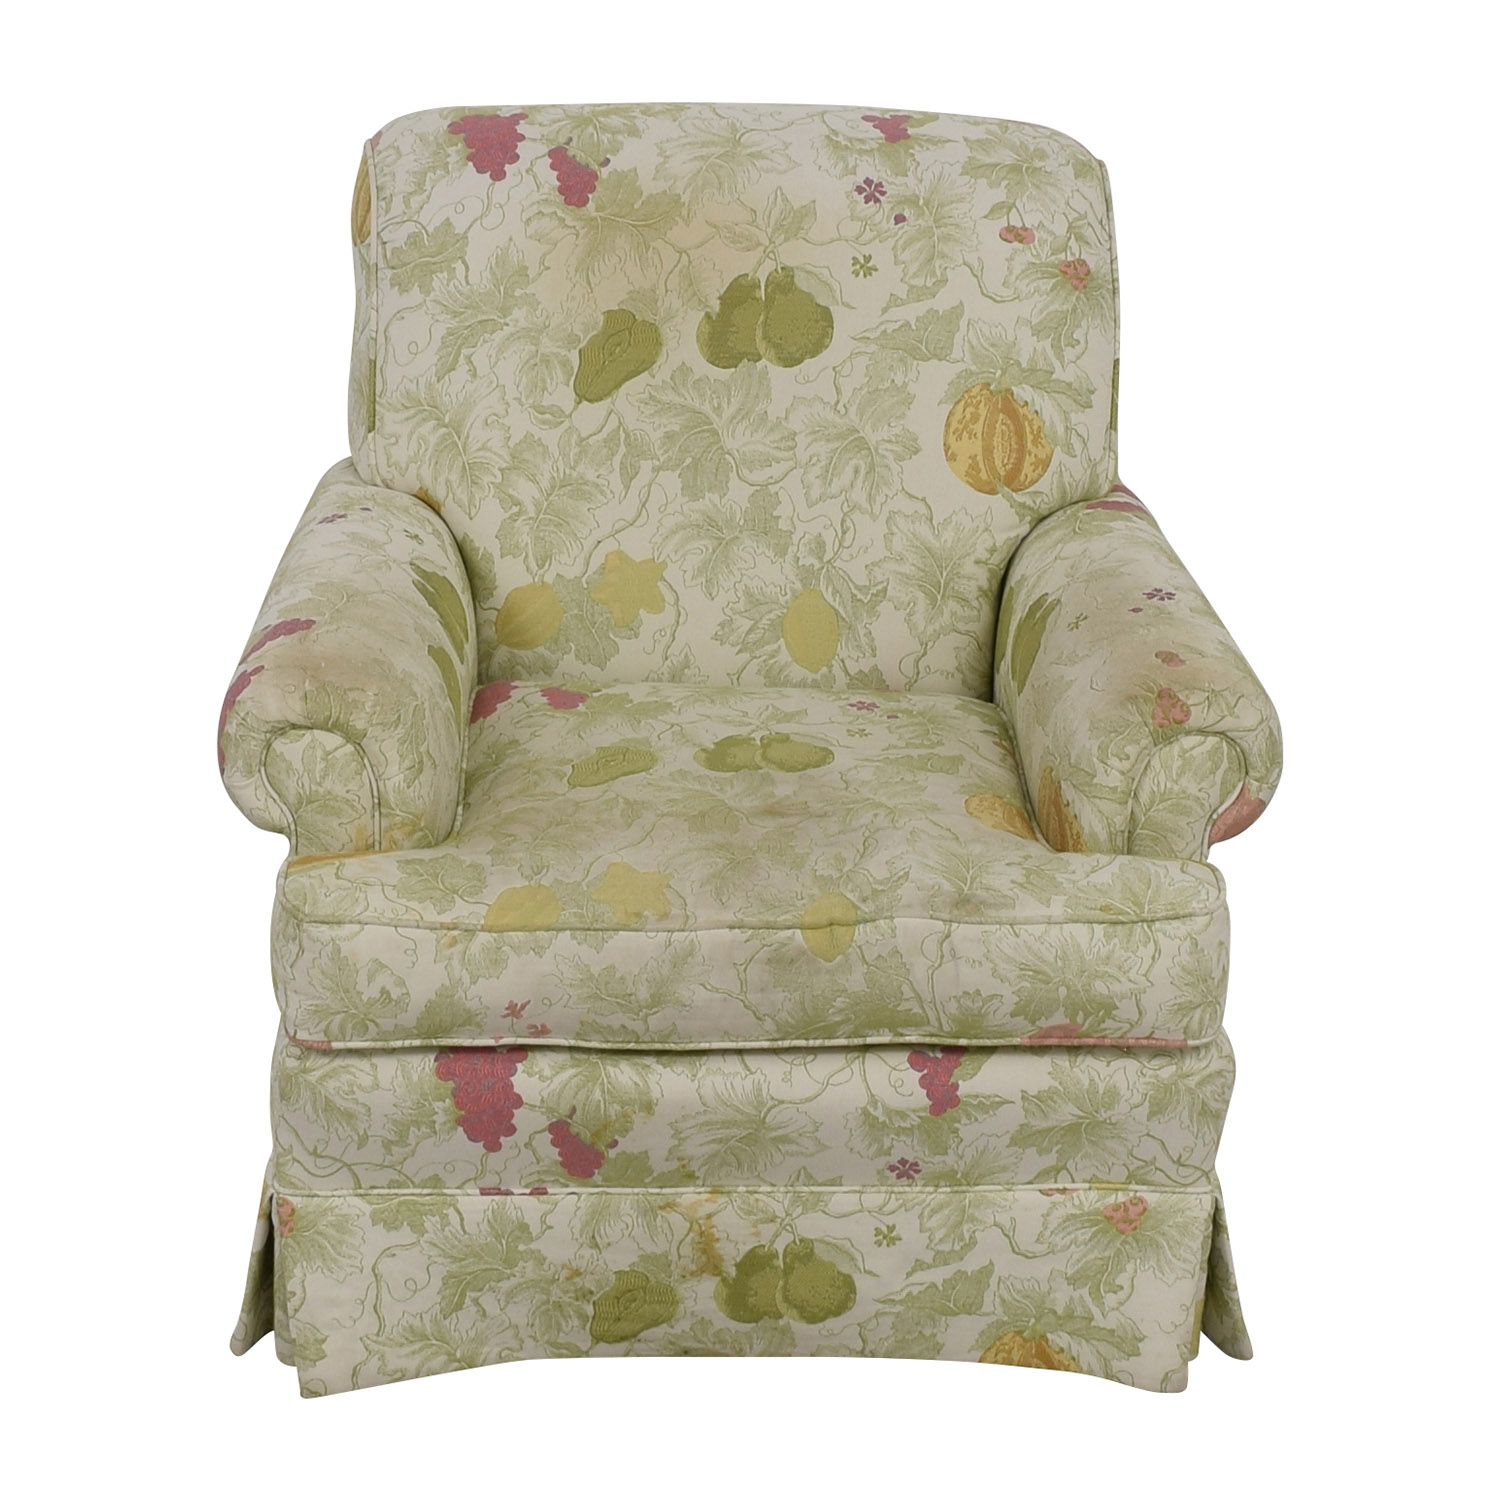 66% OFF Antique Accent Chair with Hole Caning Back Chairs